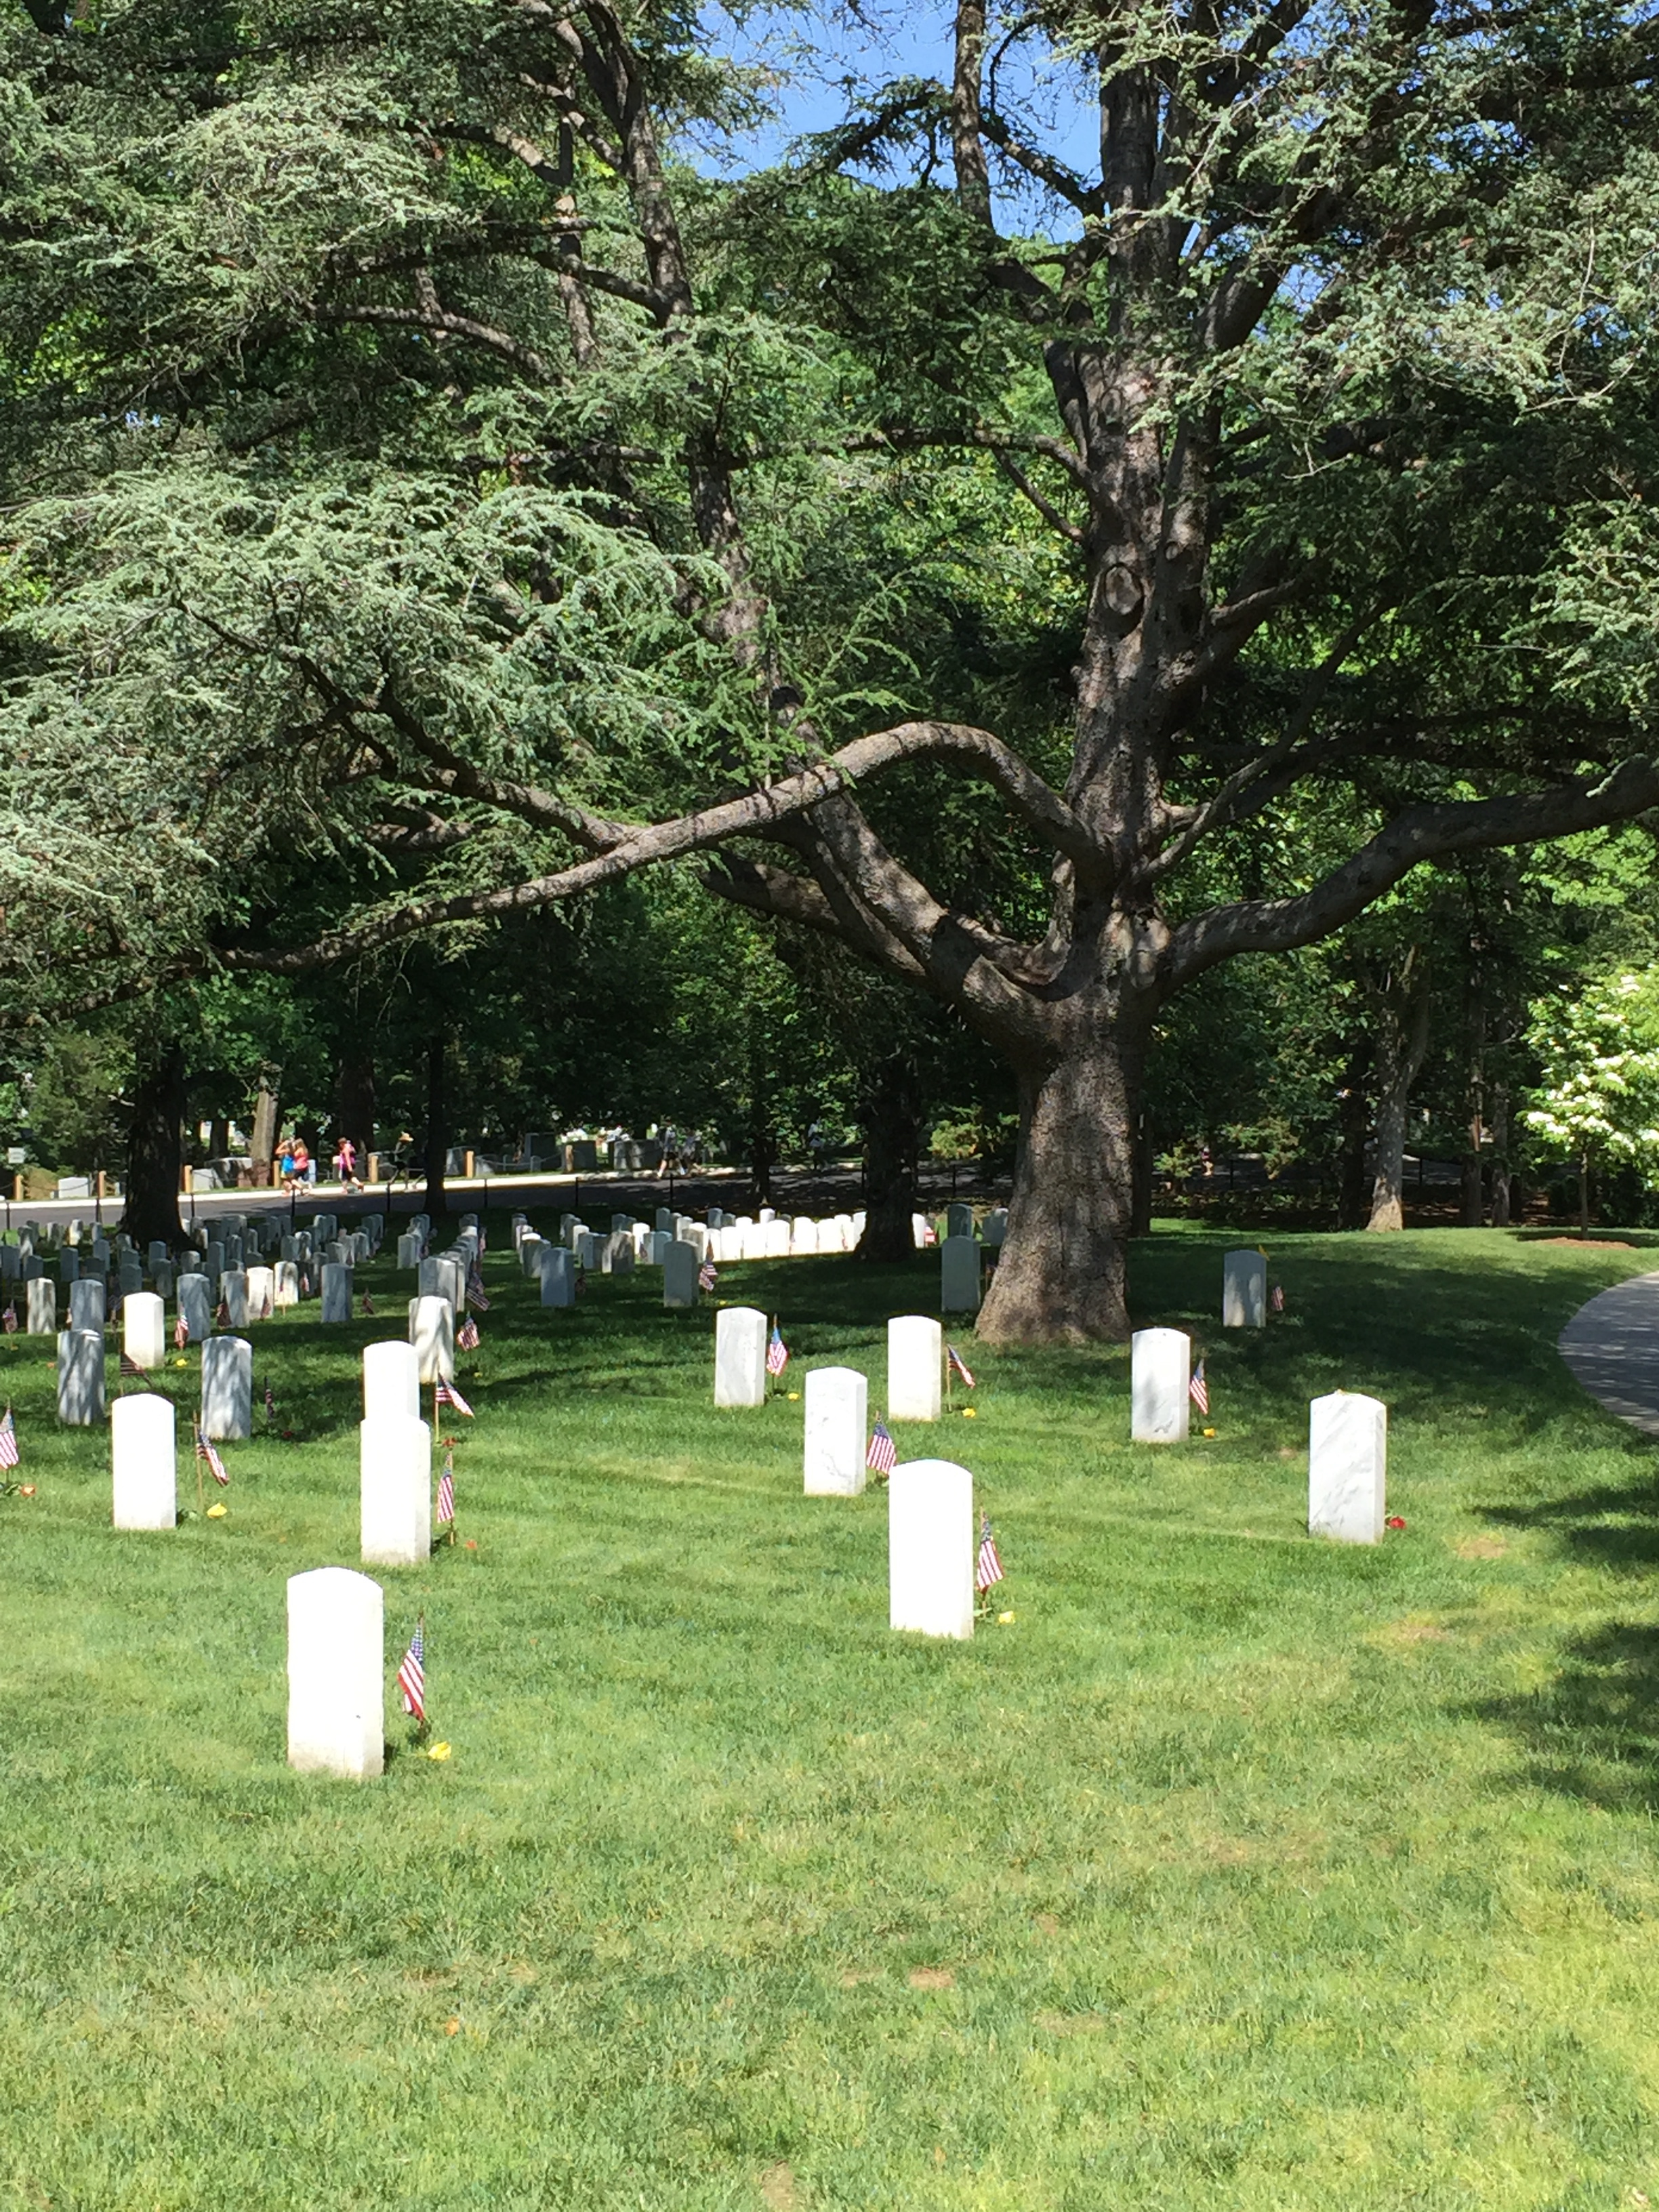 Henry Johnson is buried in this hallowed ground at Arlington National Cemetery.